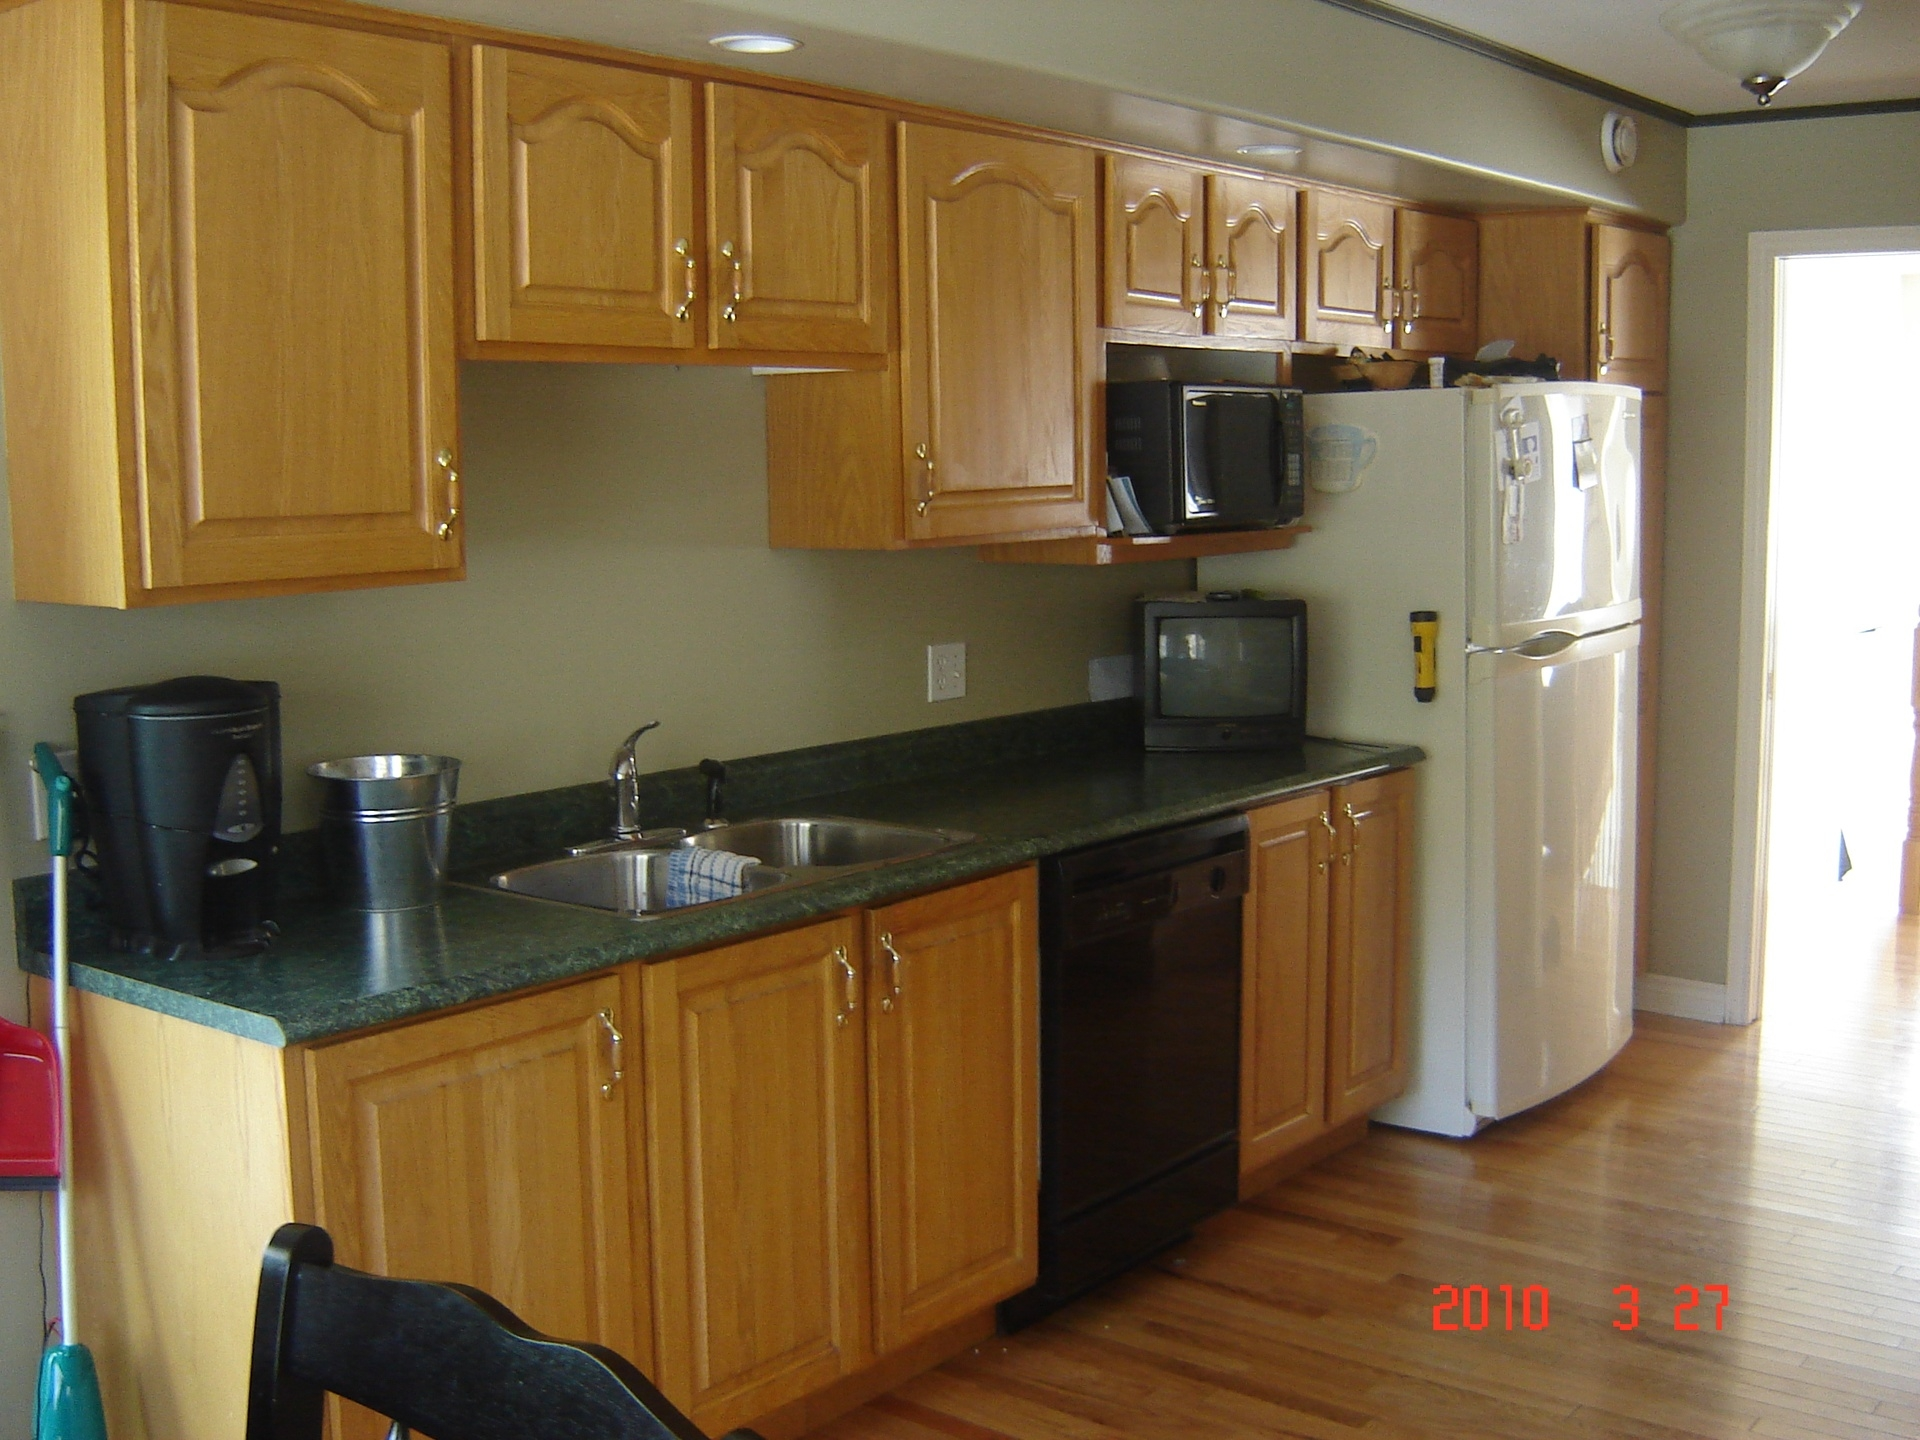 1980'S Style Kitchen Cabinets